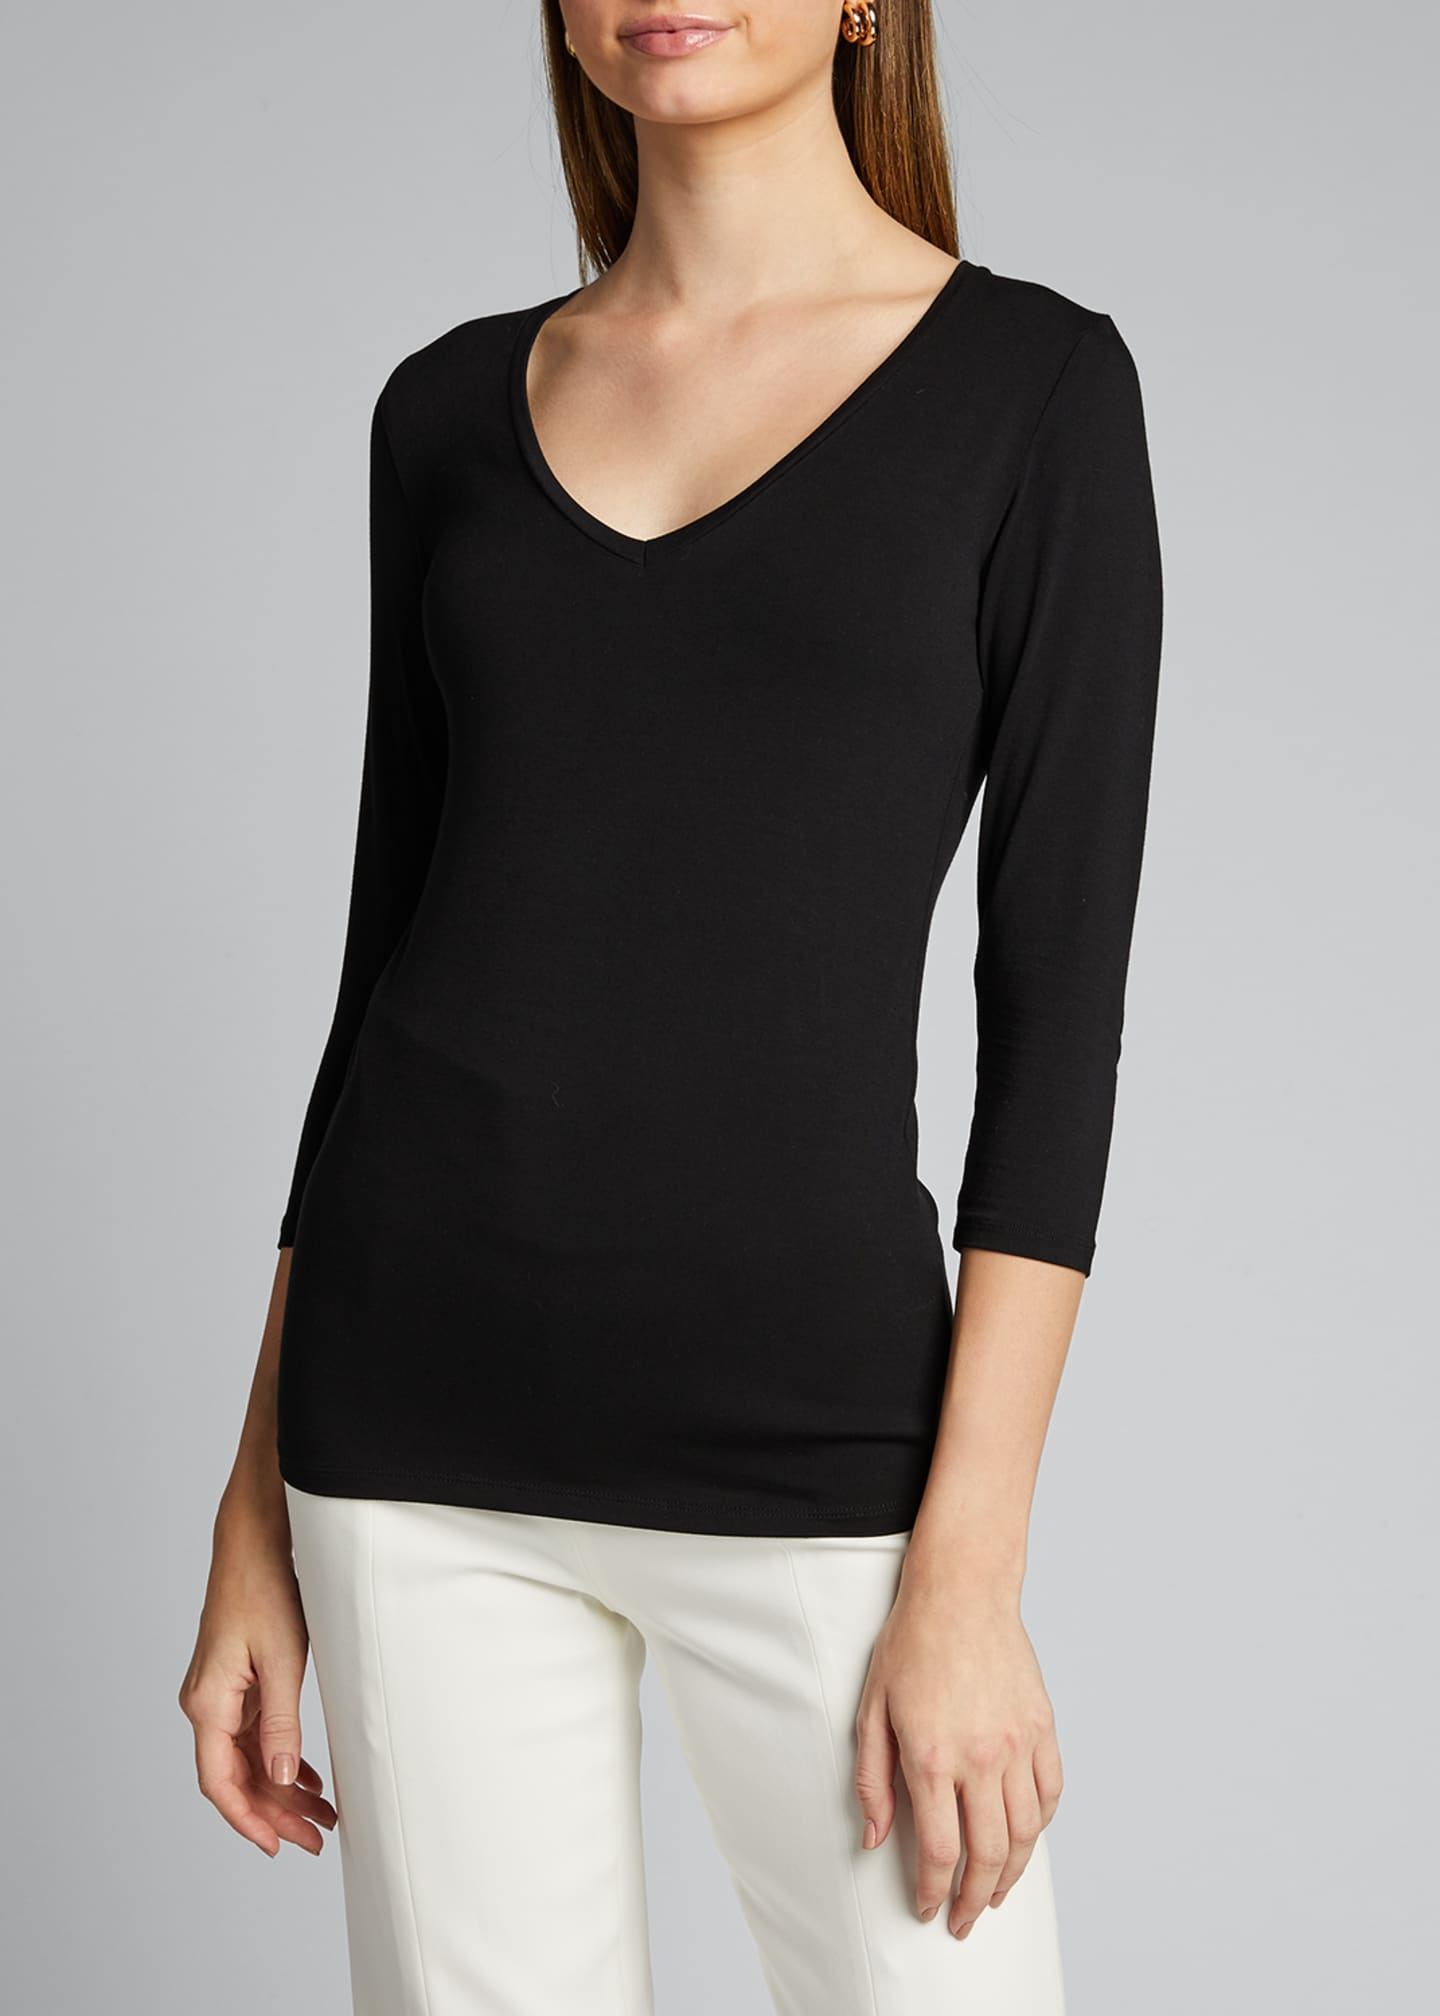 Image 3 of 5: V-Neck 3/4-Sleeve Tee